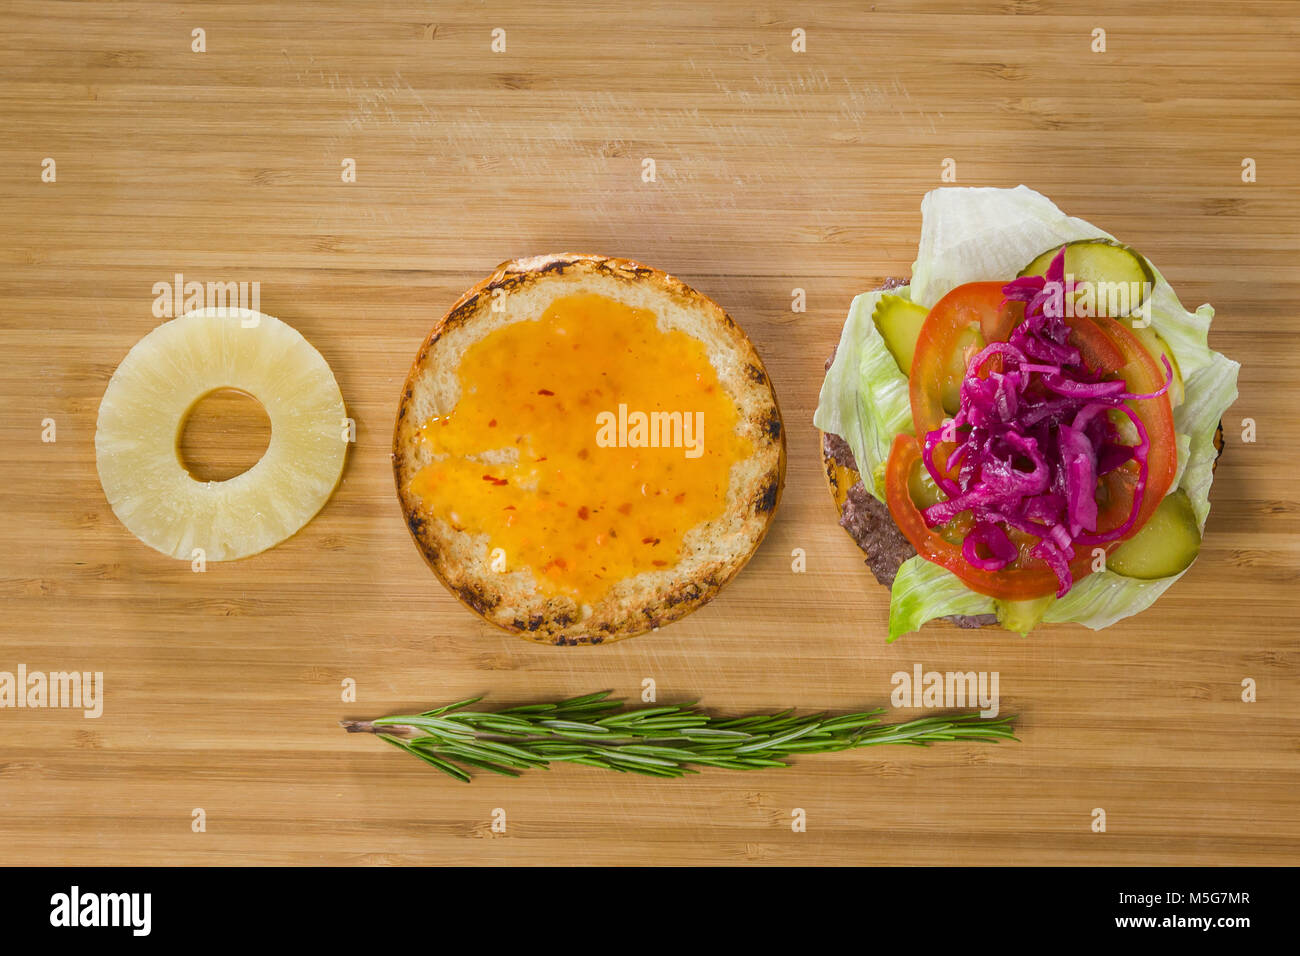 Open burger with pineapple, onion and vegetables - Stock Image